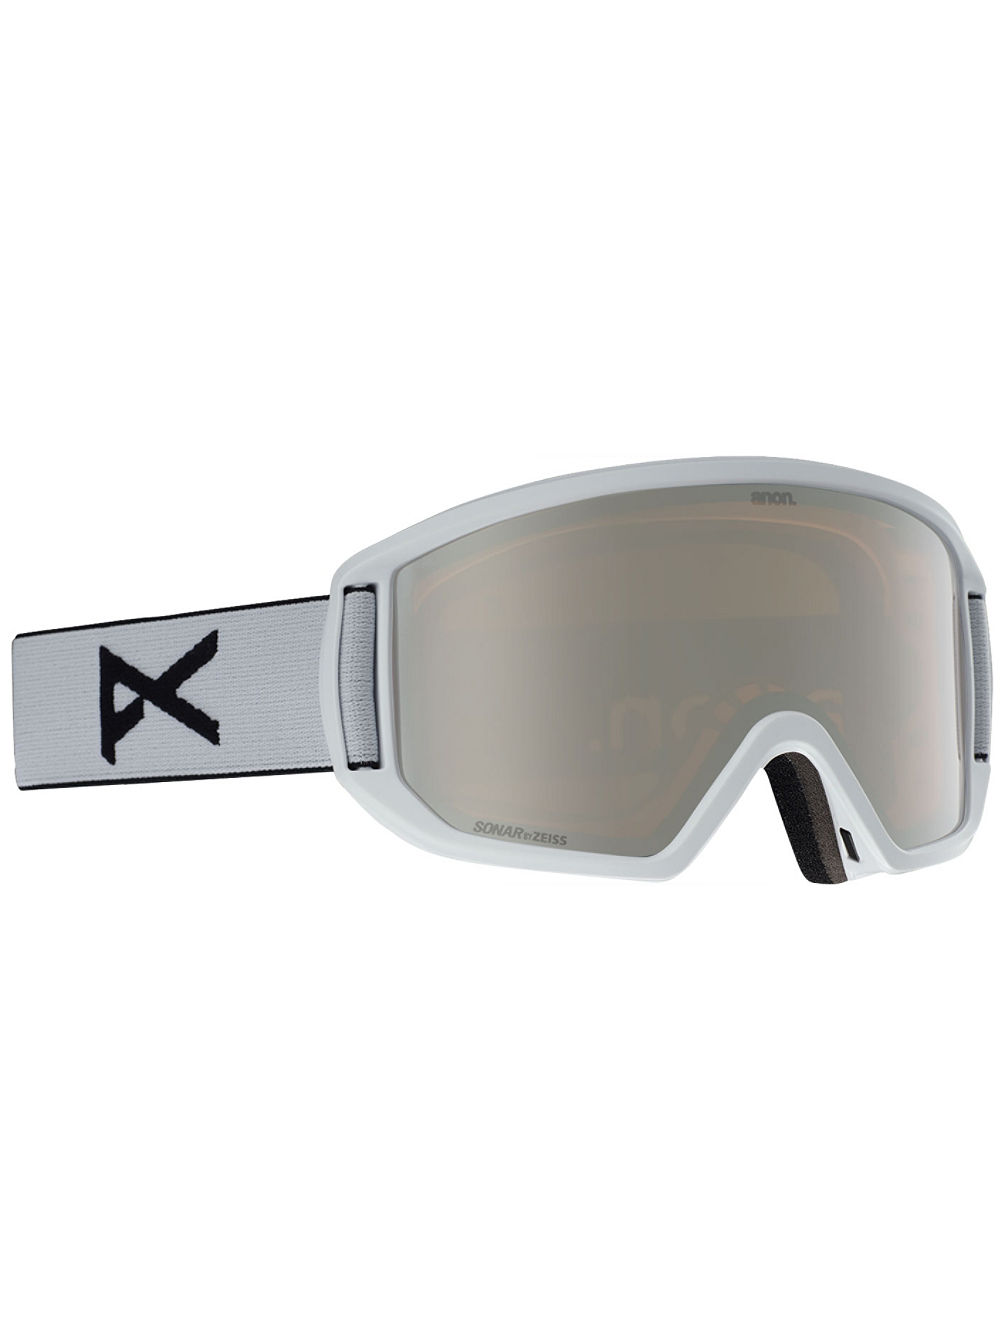 Relapse White Goggle